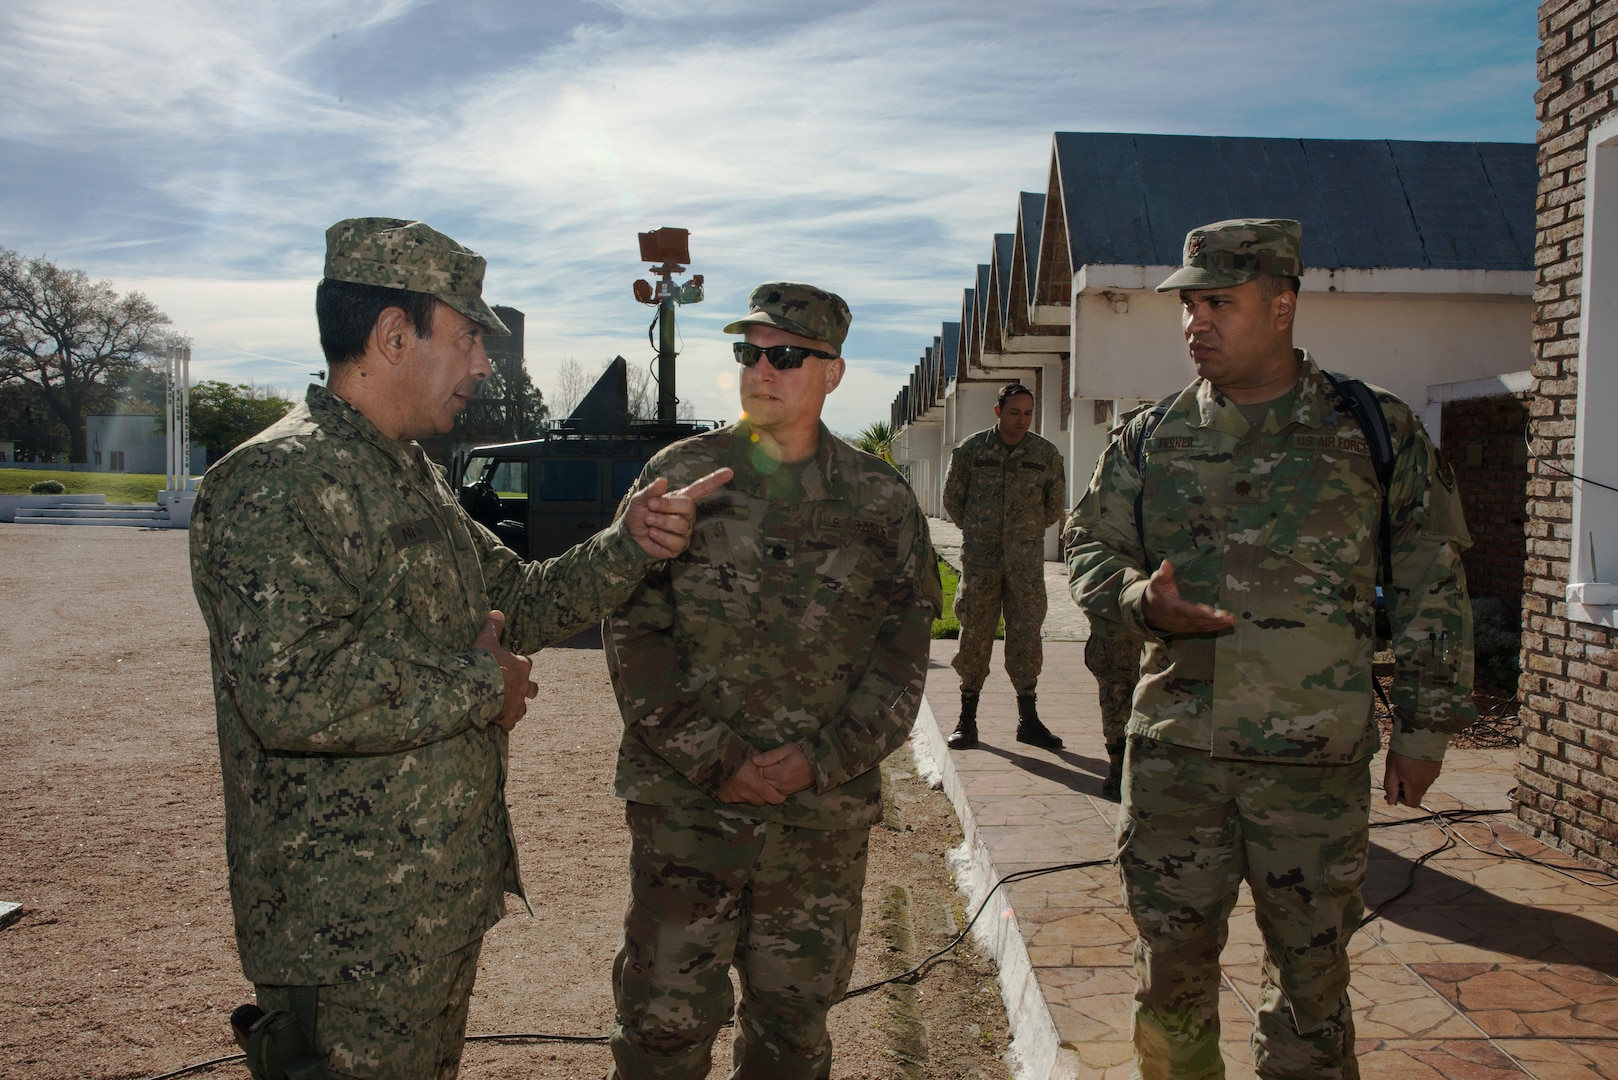 Uruguayan Army Colonel Dyver M. Neme, Communications Brigade One Commander, left, discusses the Uruguayan Army's communications capabilities with Lt. Col. Guy Marino, 103rd Air Control Squadron, center, and Maj. David Ferrer, Connecticut State Partnership Program Director in Montevideo, Uruguay, June 27, 2019.